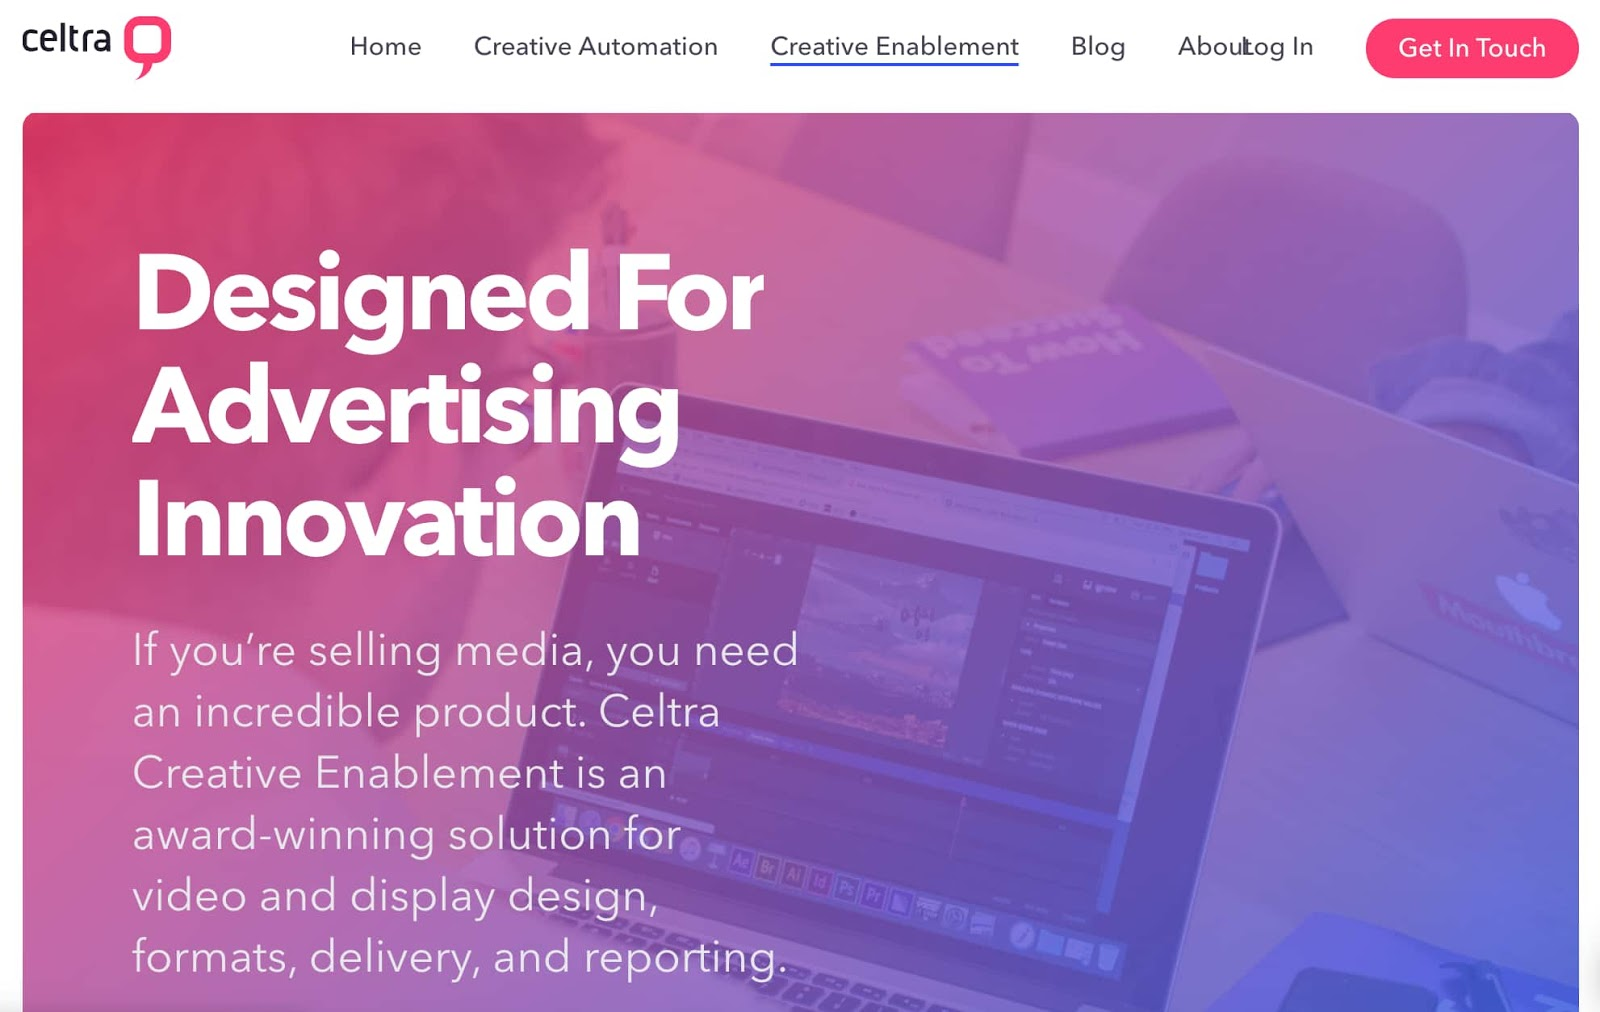 celtra advertising management tool and creative platform